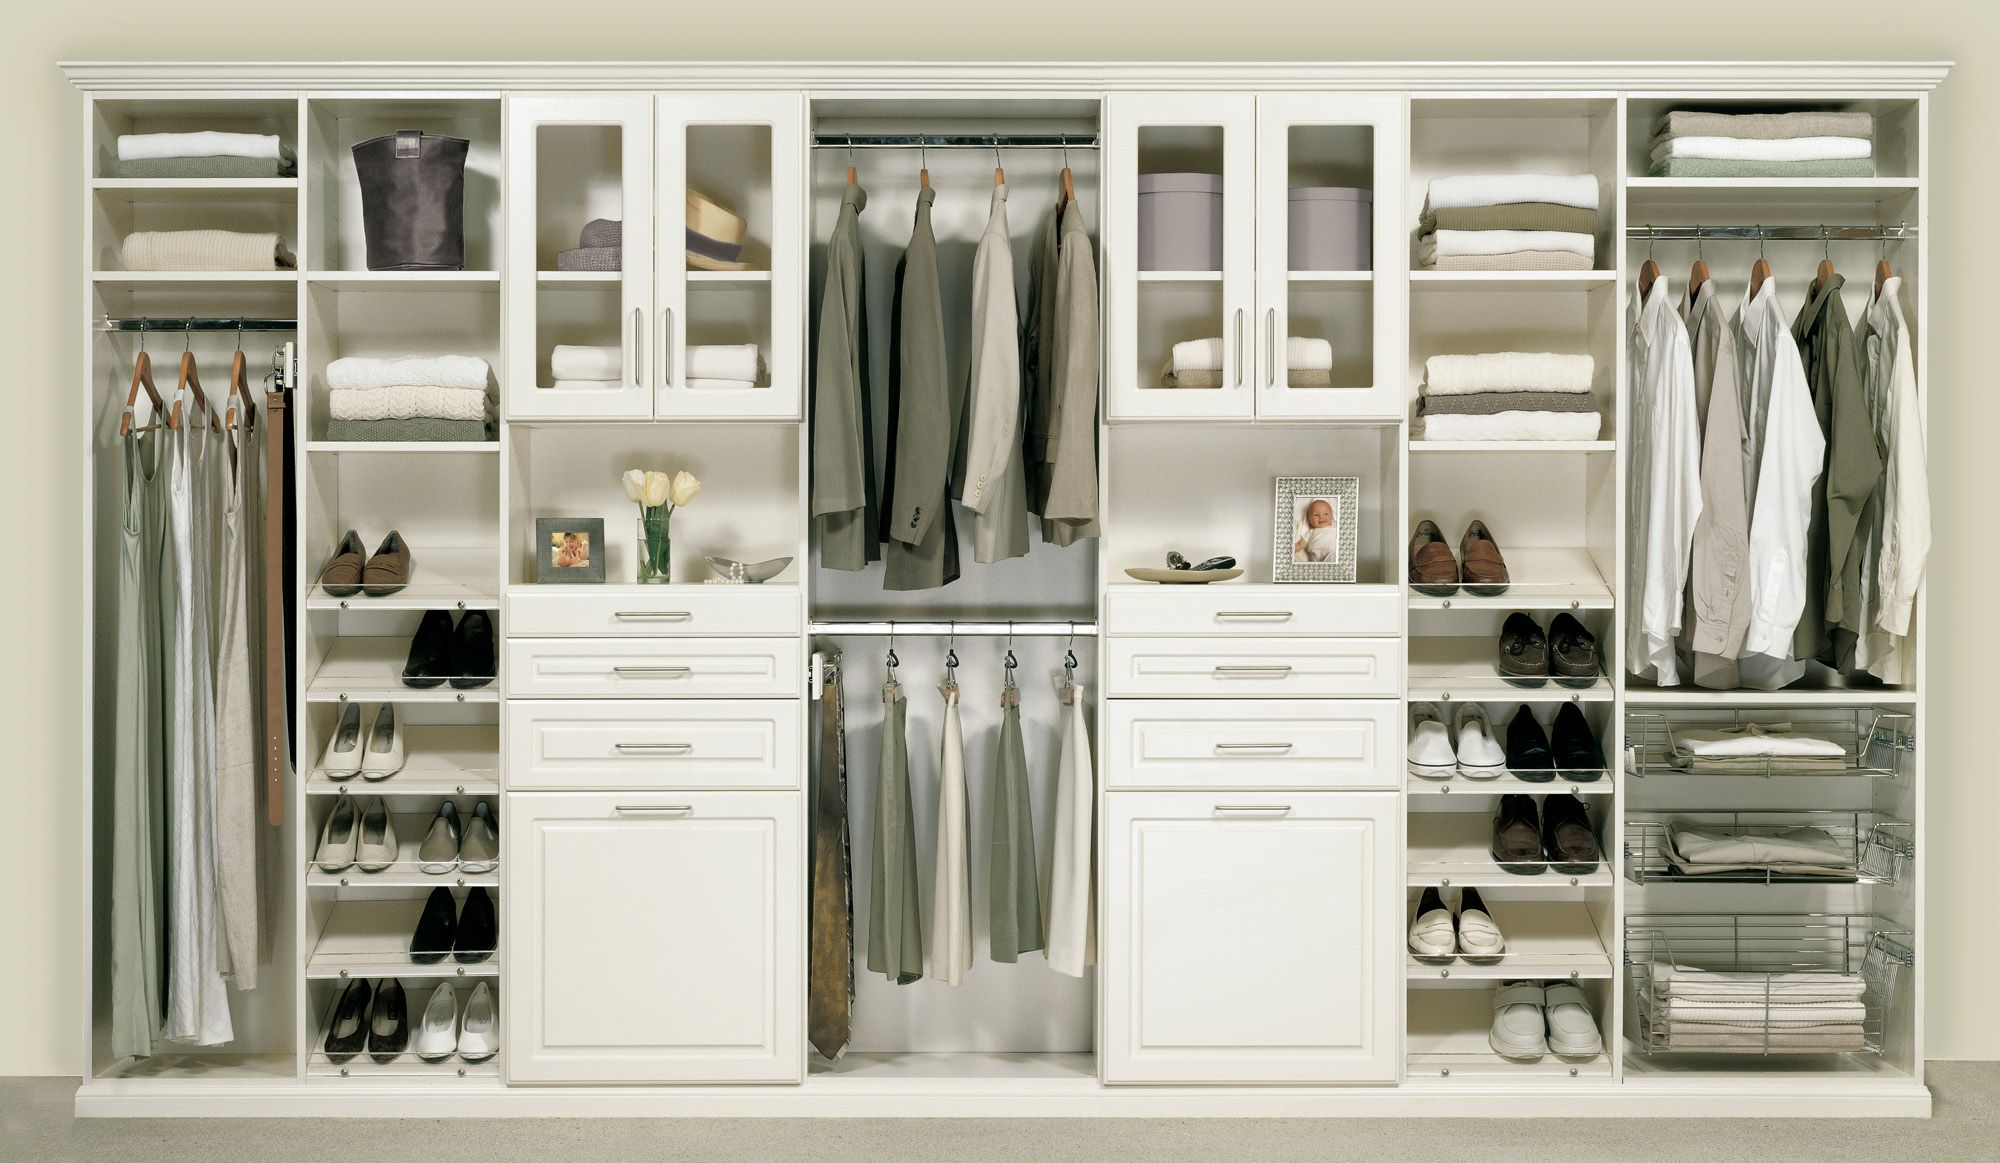 His And Hers Bedroom Closet In An Antique White finish Melamine With Deco Drawers And Doors With Gl Closet Storage Cabinets White Wardrobe Closet Closet Designs